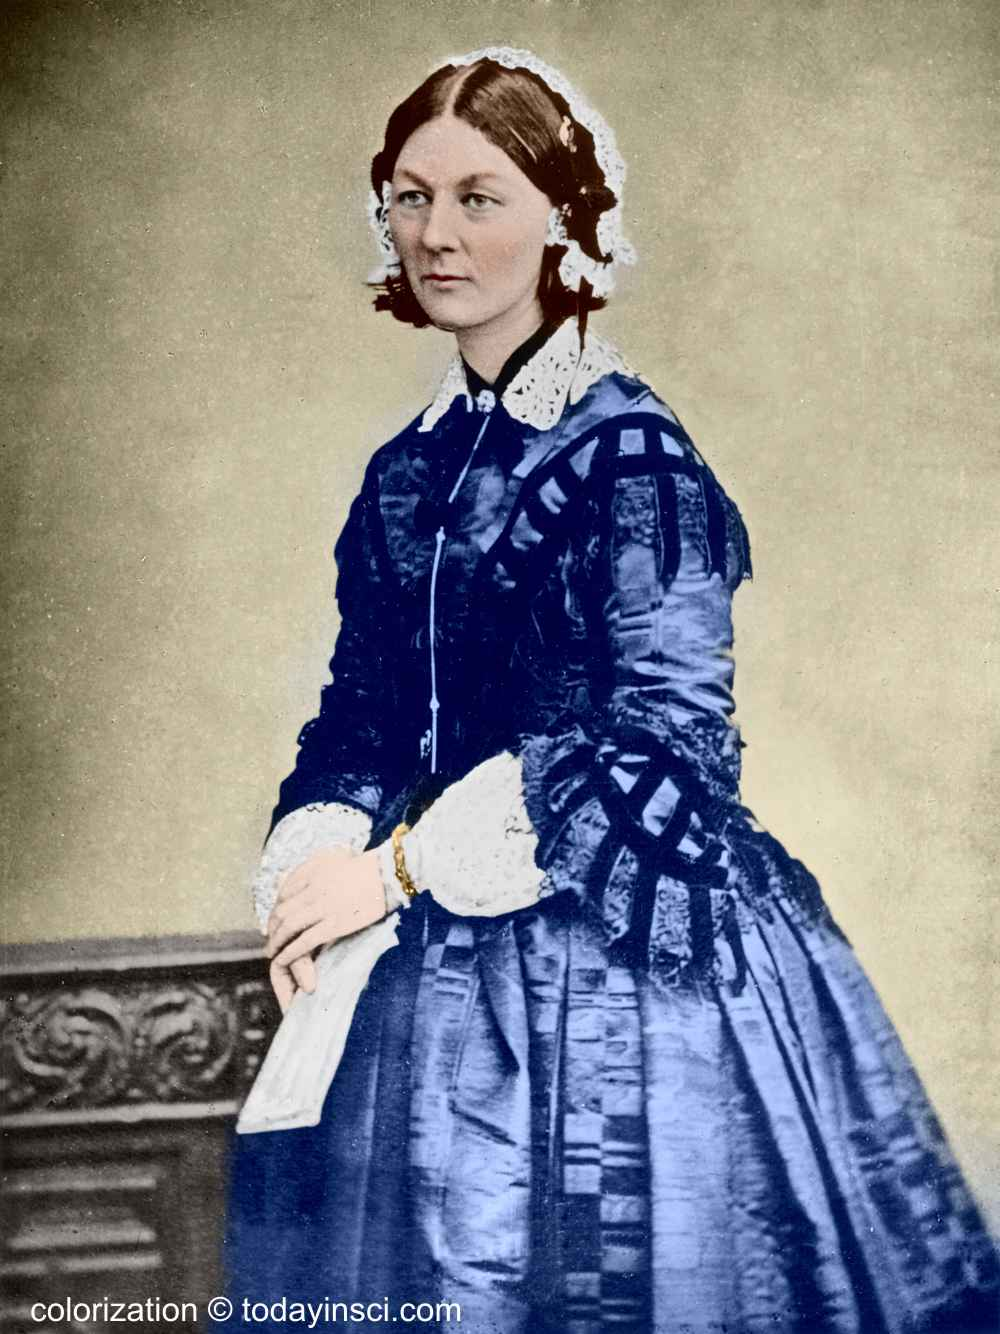 Florence Nightingale - Full length picture colored